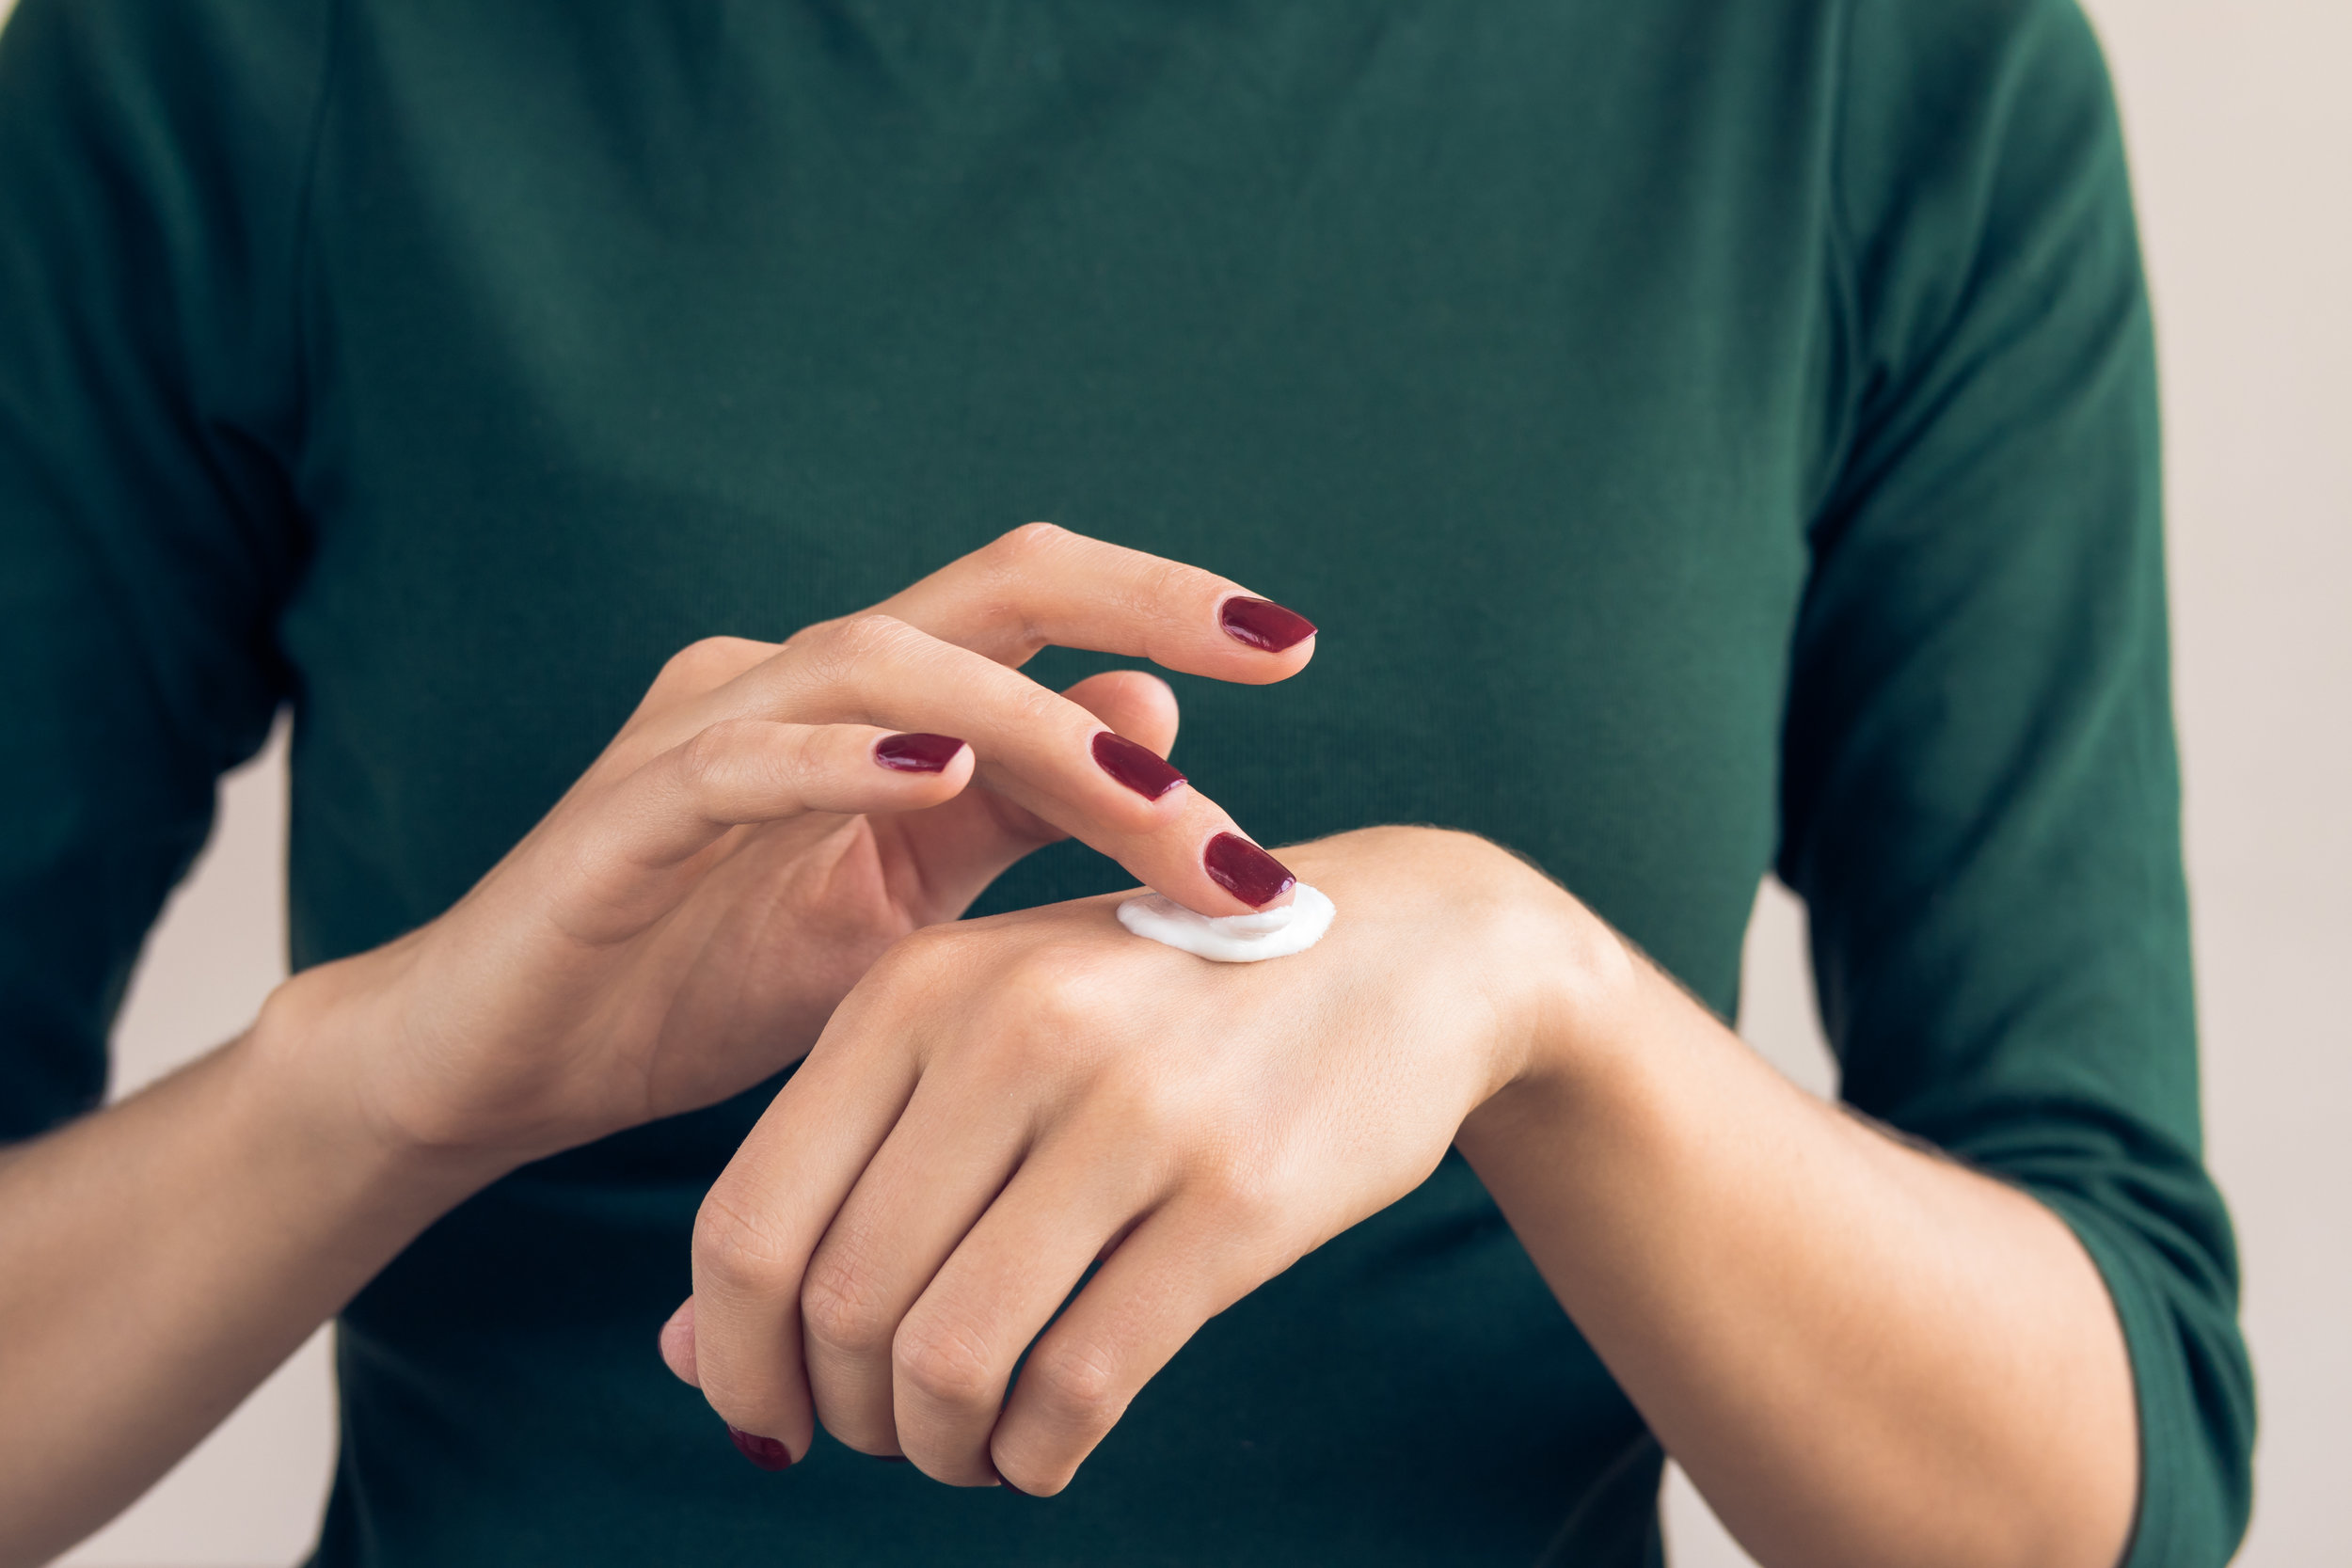 10 Best Anti-Aging Hand Creams You Won't Be Able to Put Down This Winter